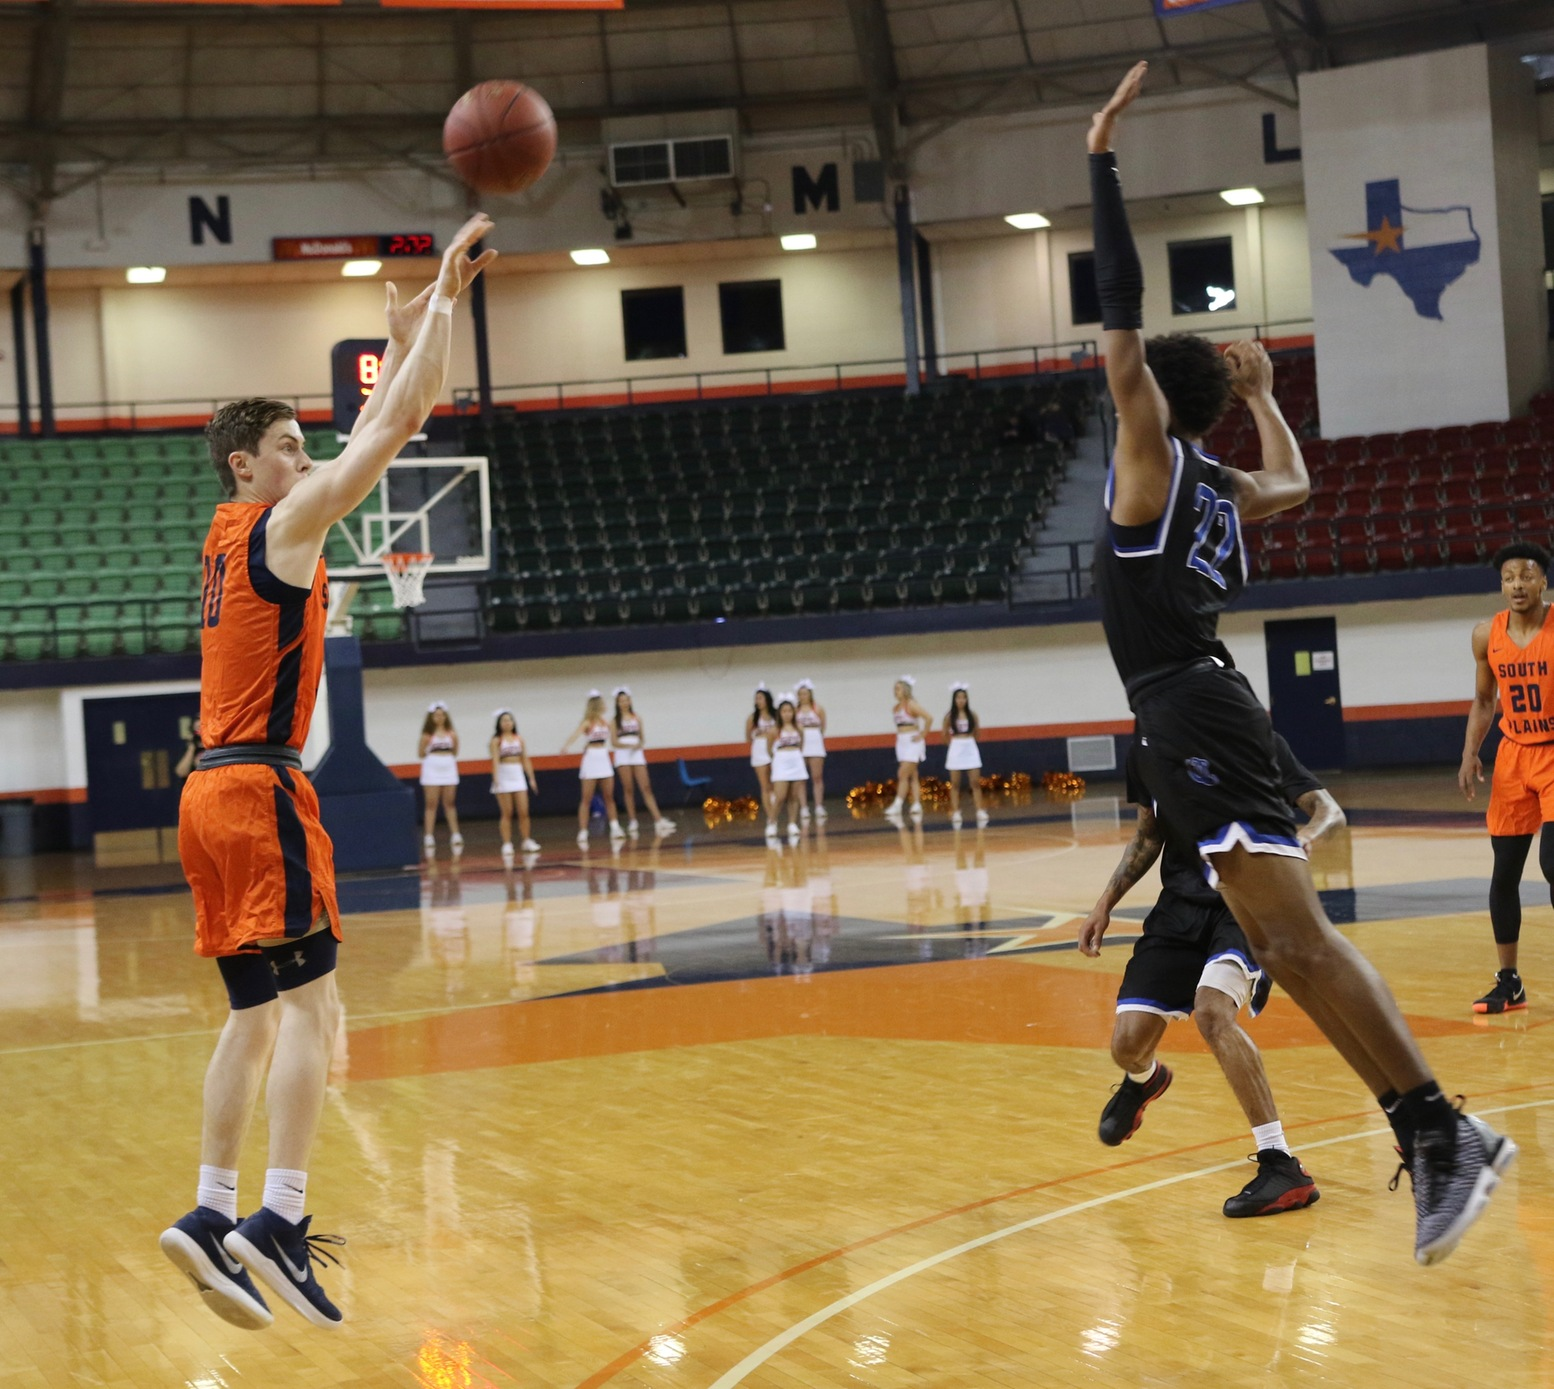 No. 1 South Plains falls to No. 15 Odessa 65-64 in overtime Monday